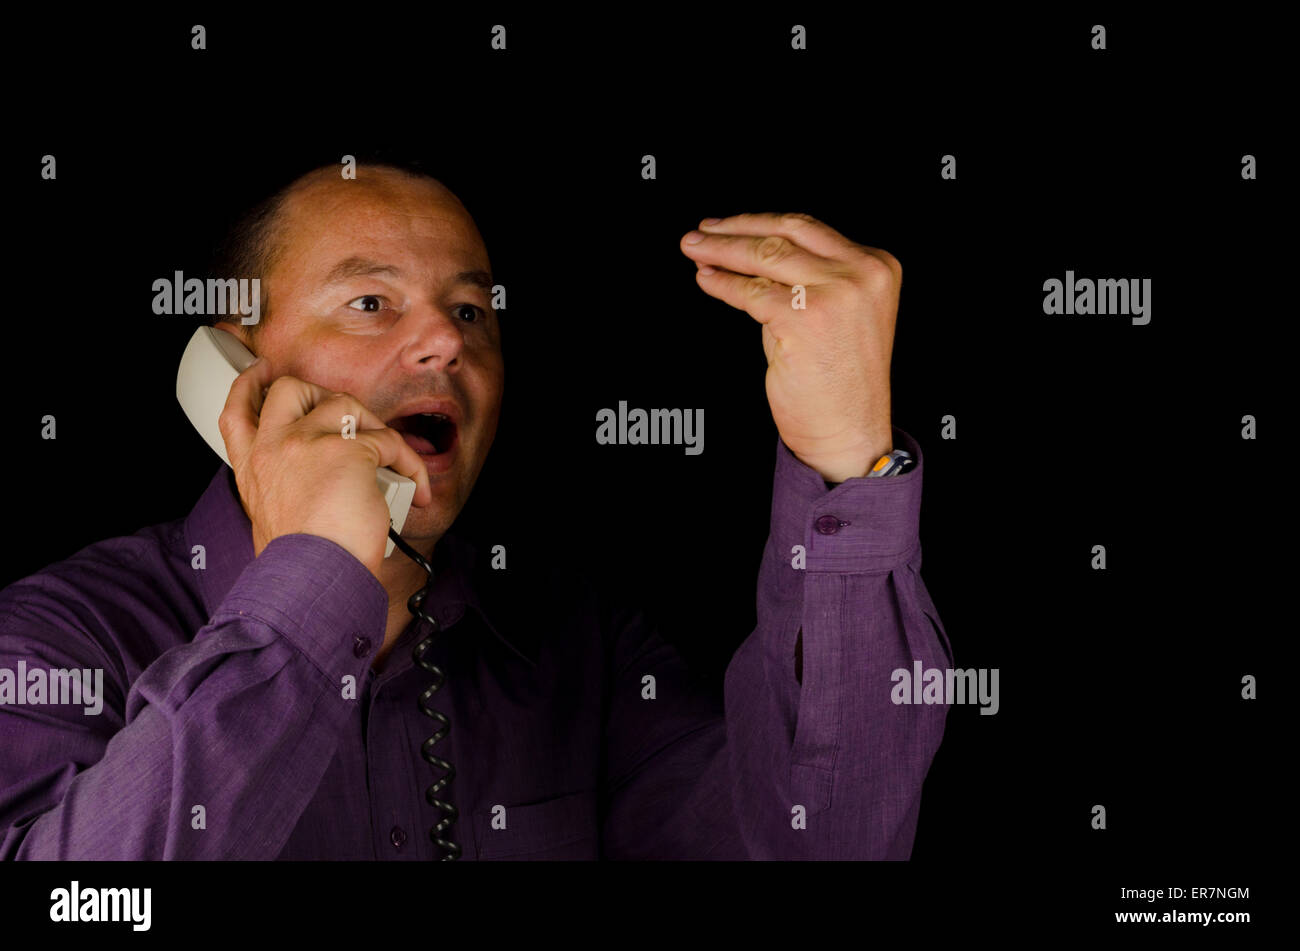 Guy becoming lound and obnoxious on the telphone - Stock Image